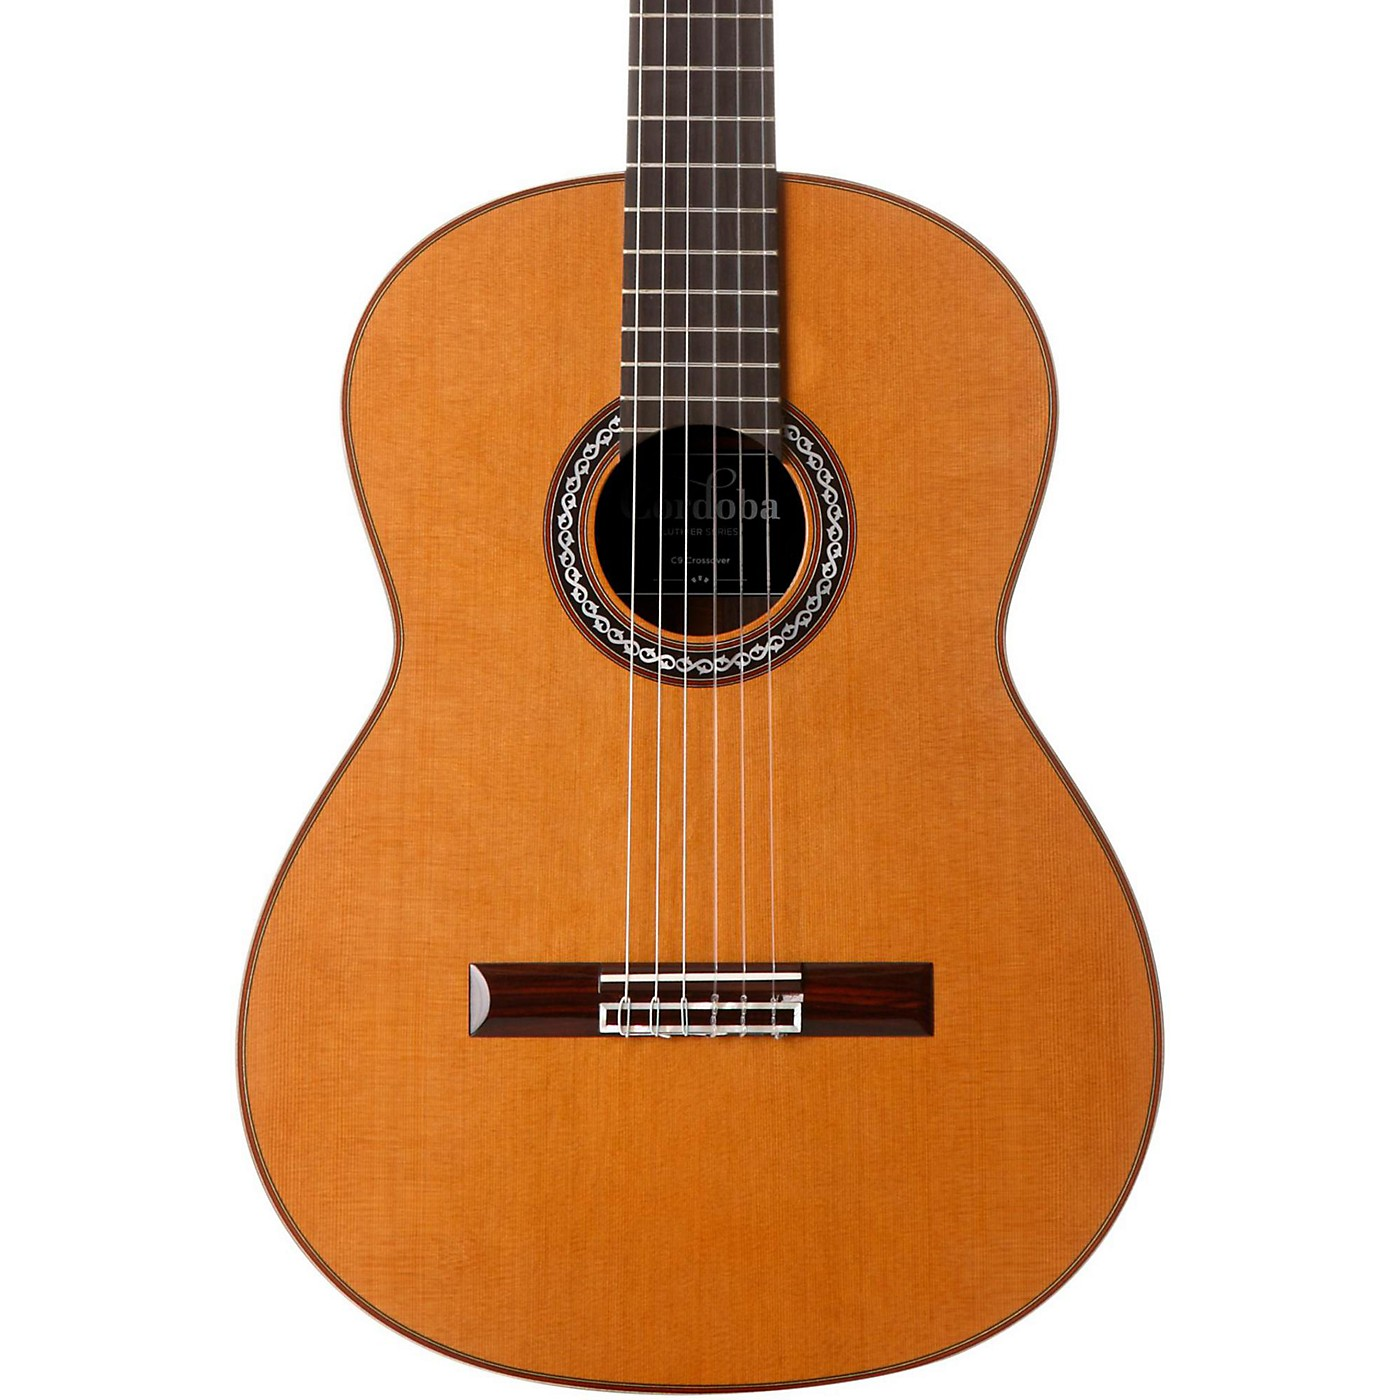 Cordoba C9 Crossover Nylon String Acoustic Guitar thumbnail